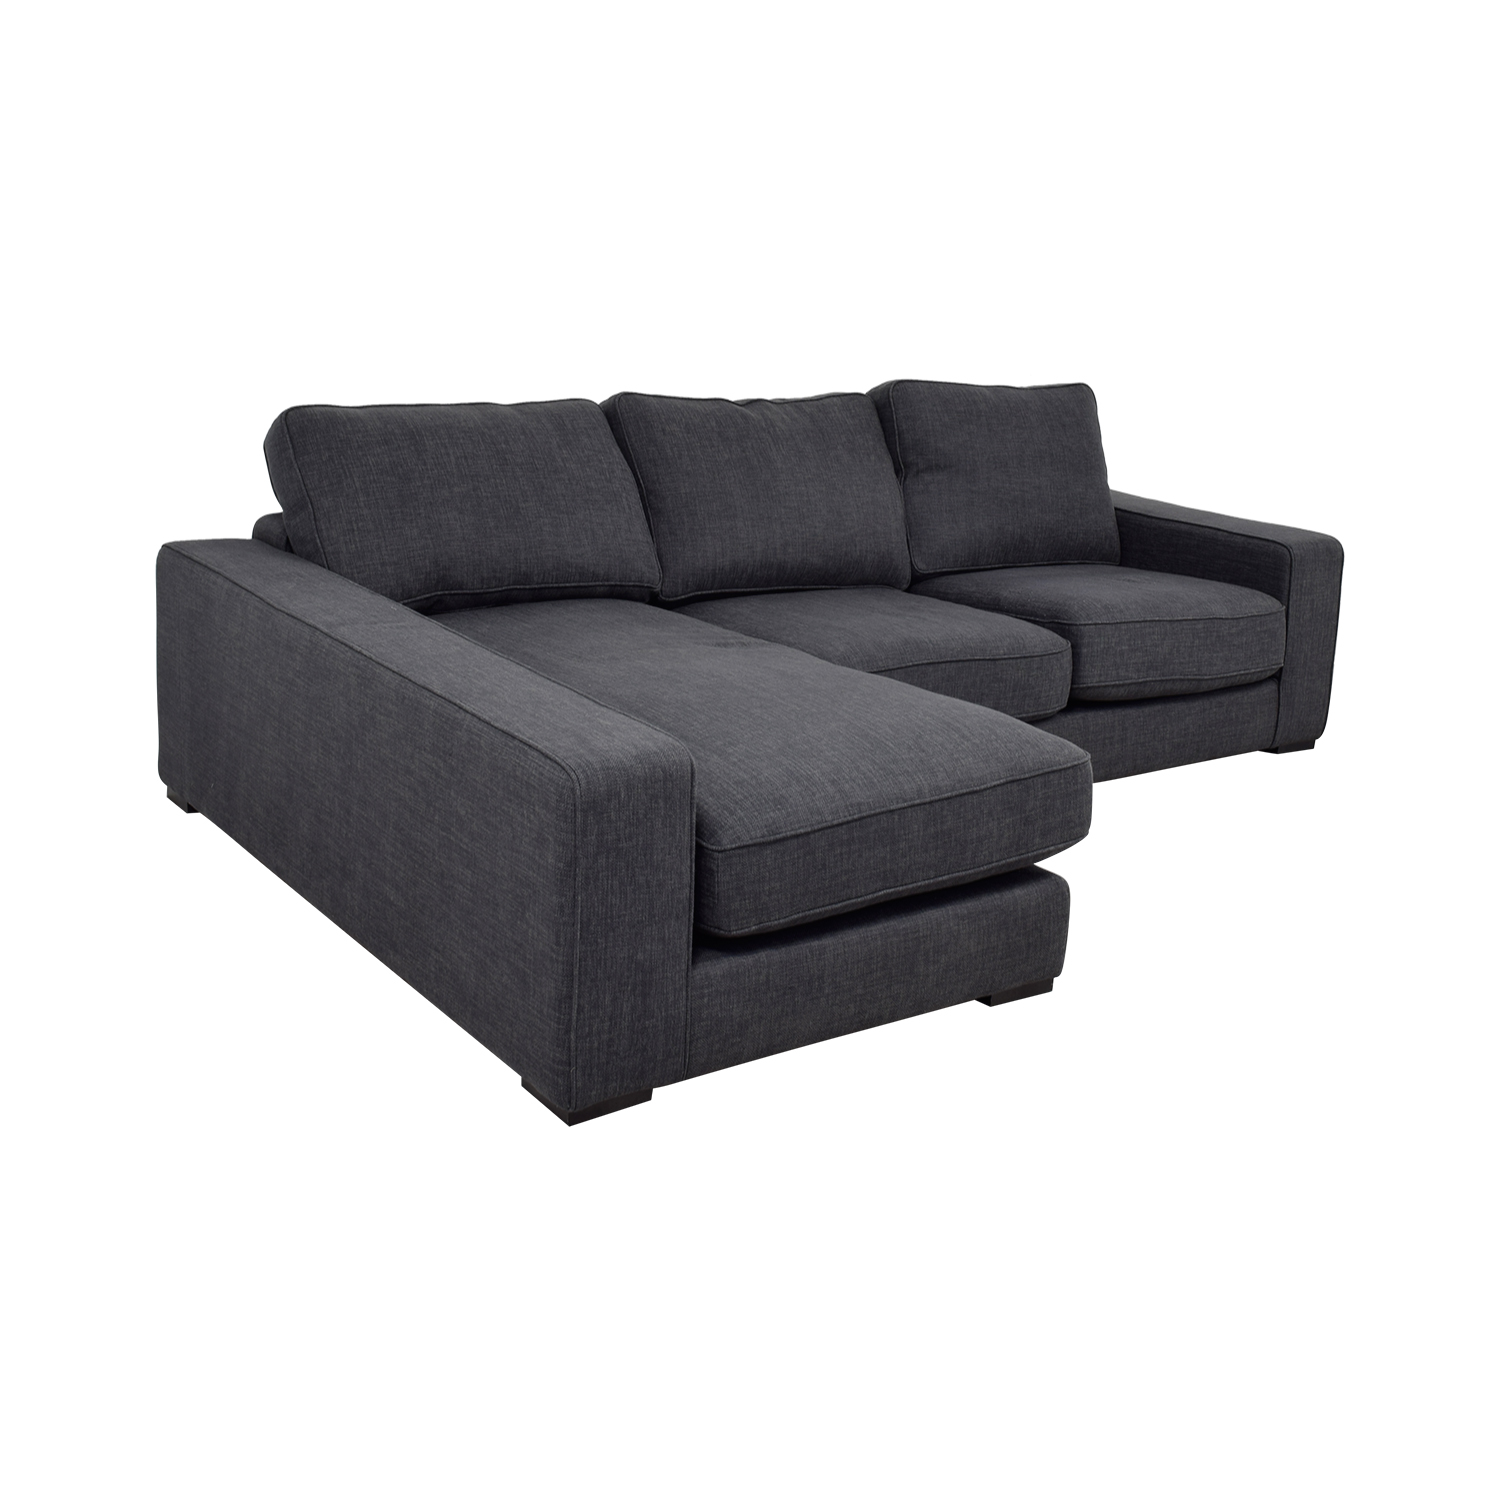 Ainsley	Pebble Weave Left Chaise Sectional price